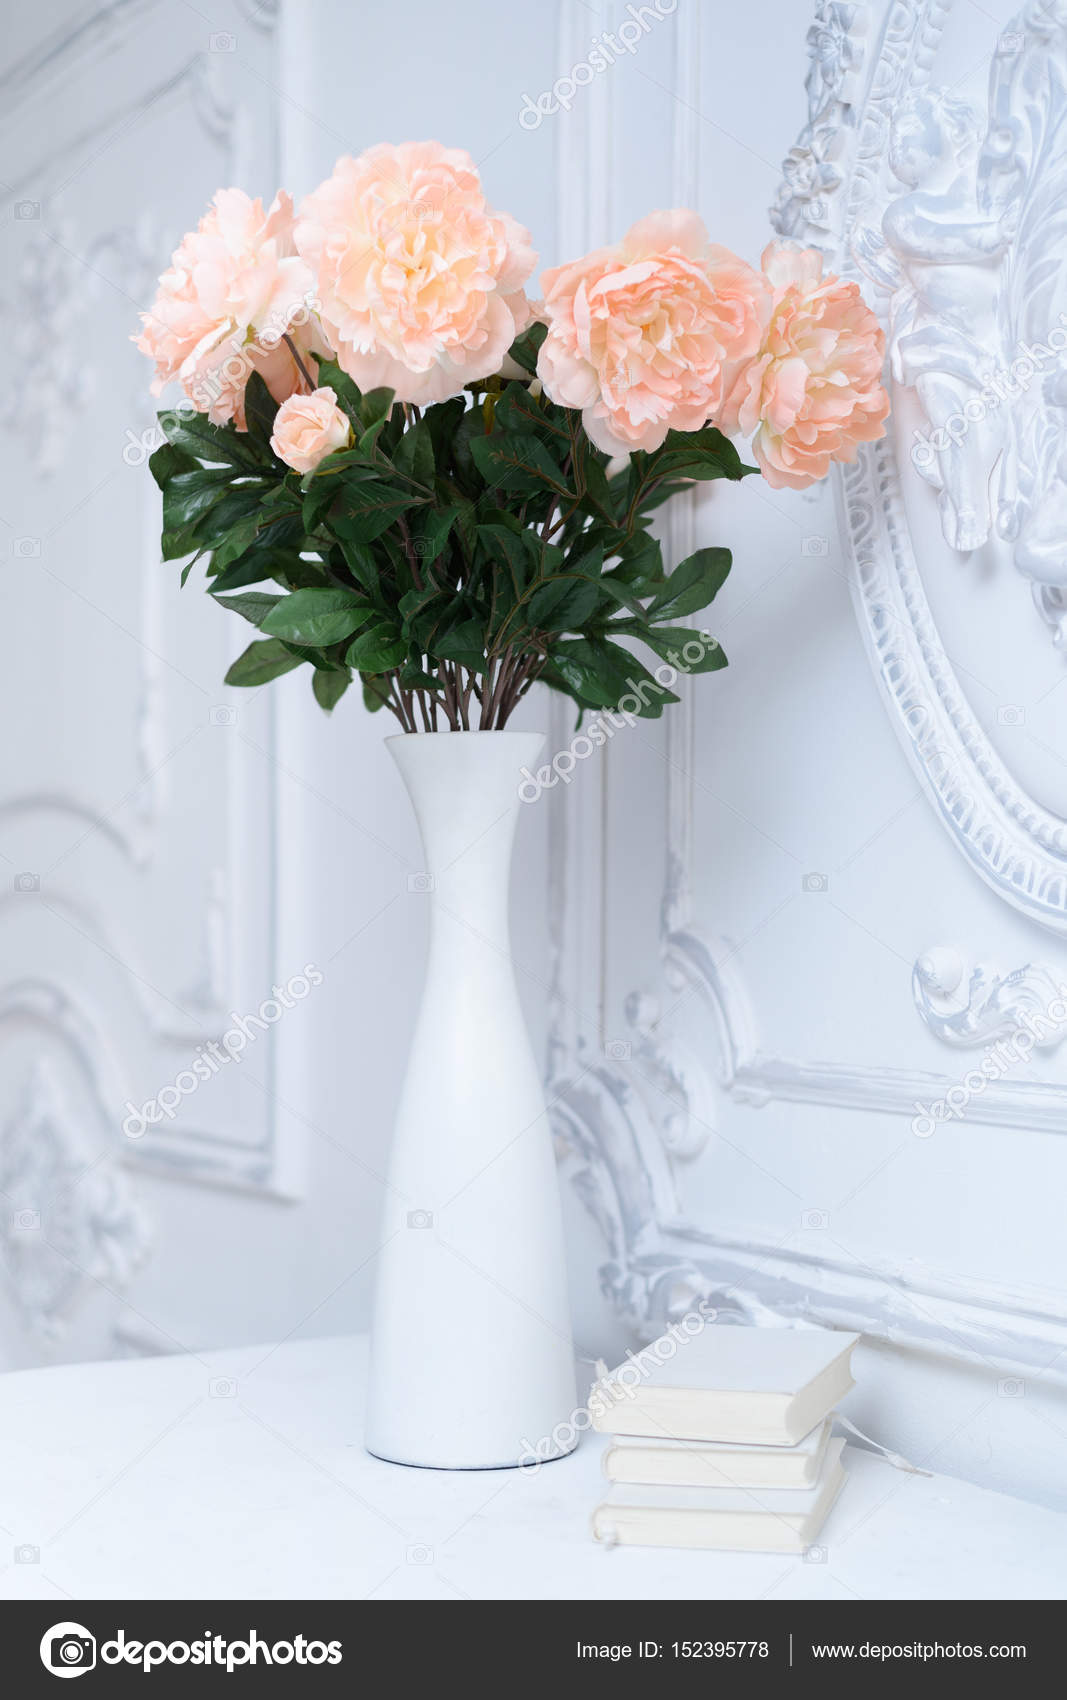 Artificial pink peonies in a white vase next to white books artificial pink peonies in a white vase next to white books composition of flowers in a white vase photo by dduda reviewsmspy